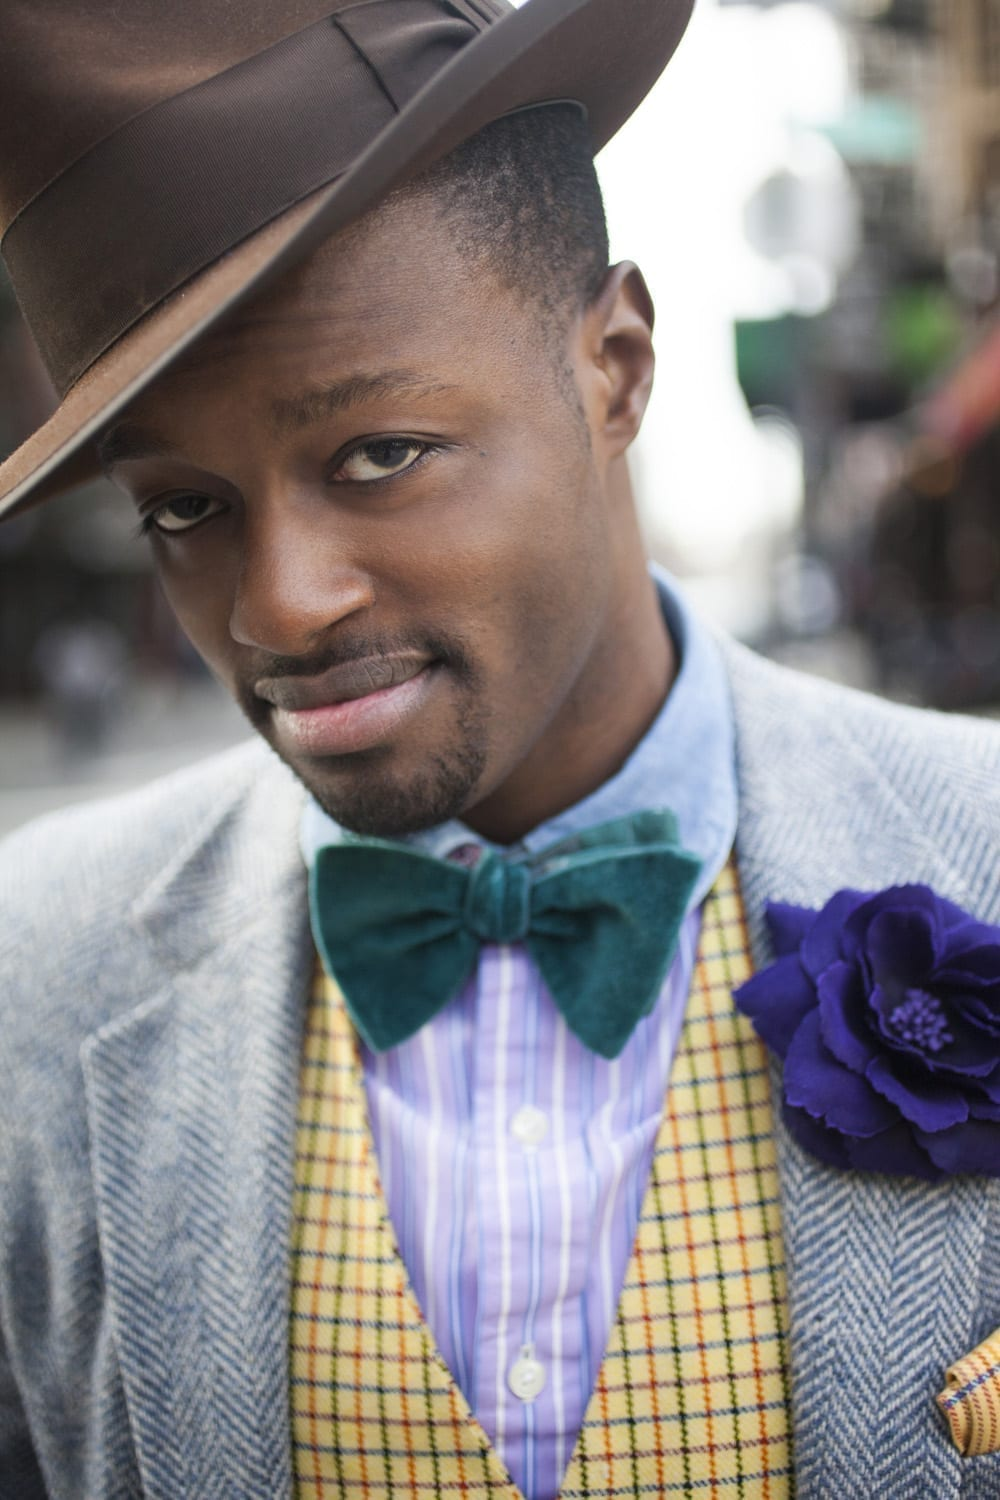 Dandy Wellington photographed by Rose Callahan in NYC on Jan 19, 2013